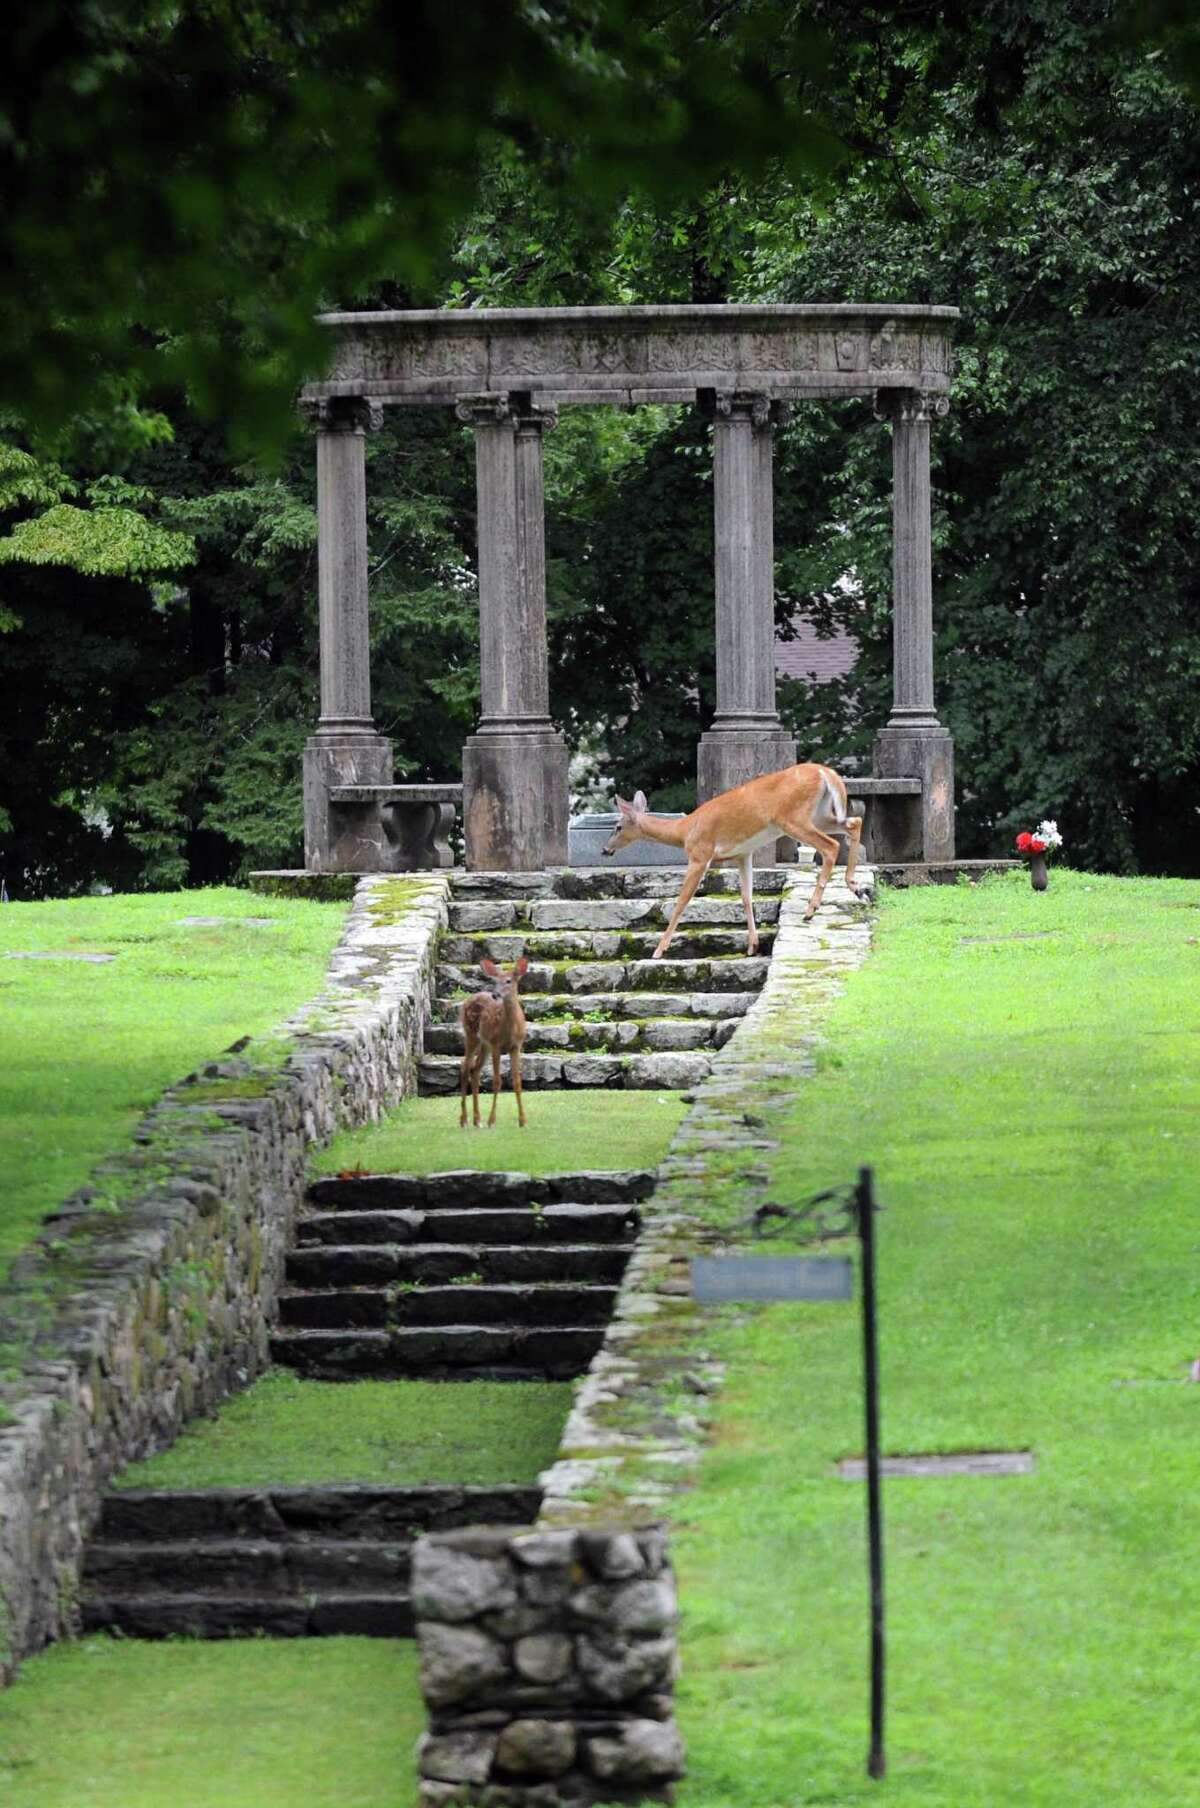 A family of deer graze on Sanctuary Knoll at the Fairfield Memorial Park in Stamford on July 18.